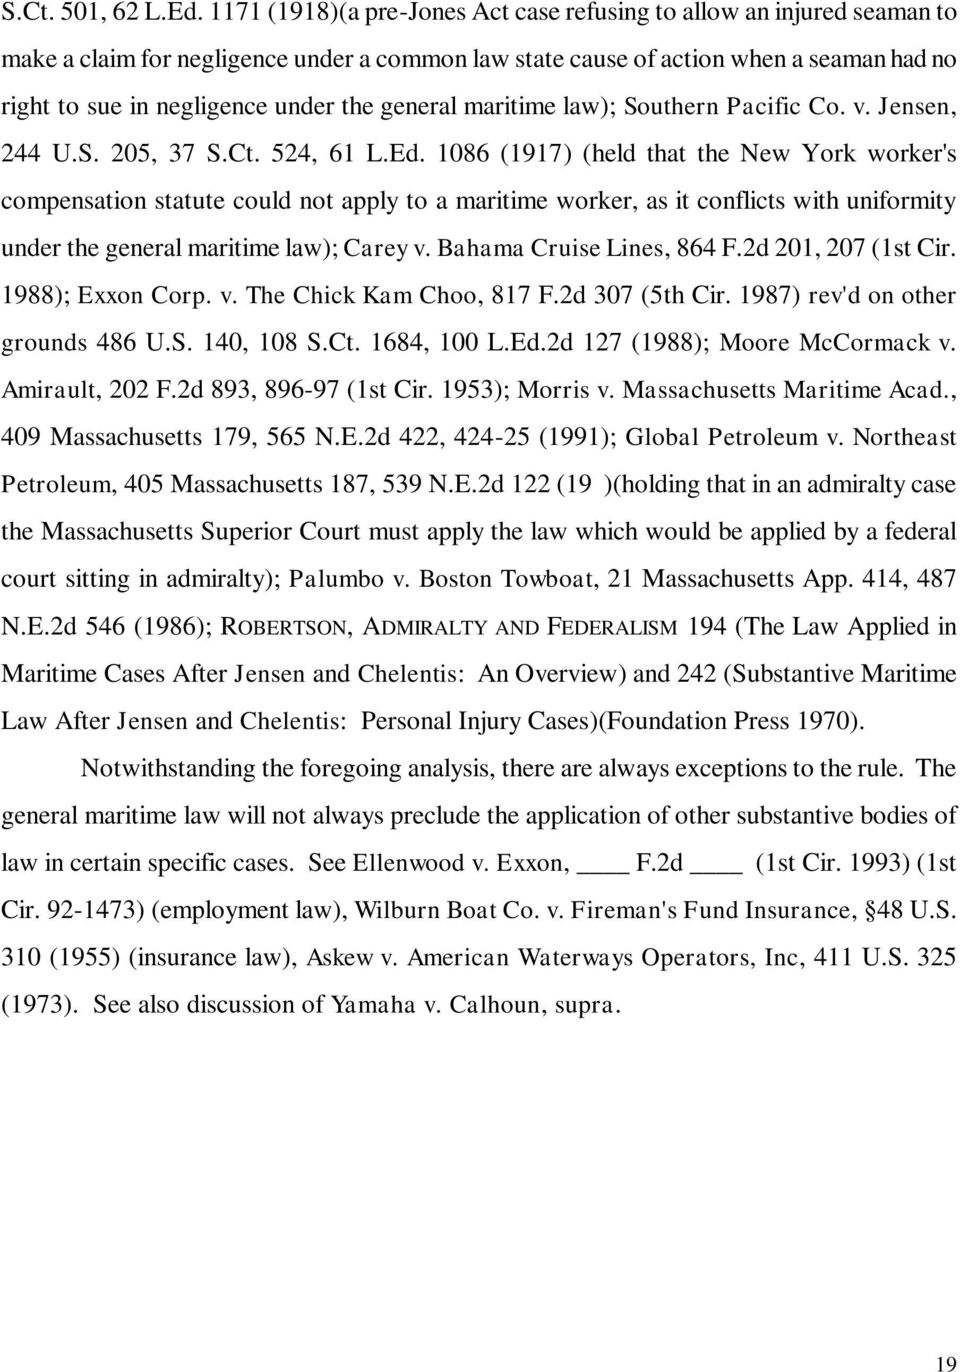 general maritime law); Southern Pacific Co. v. Jensen, 244 U.S. 205, 37 S.Ct. 524, 61 L.Ed.